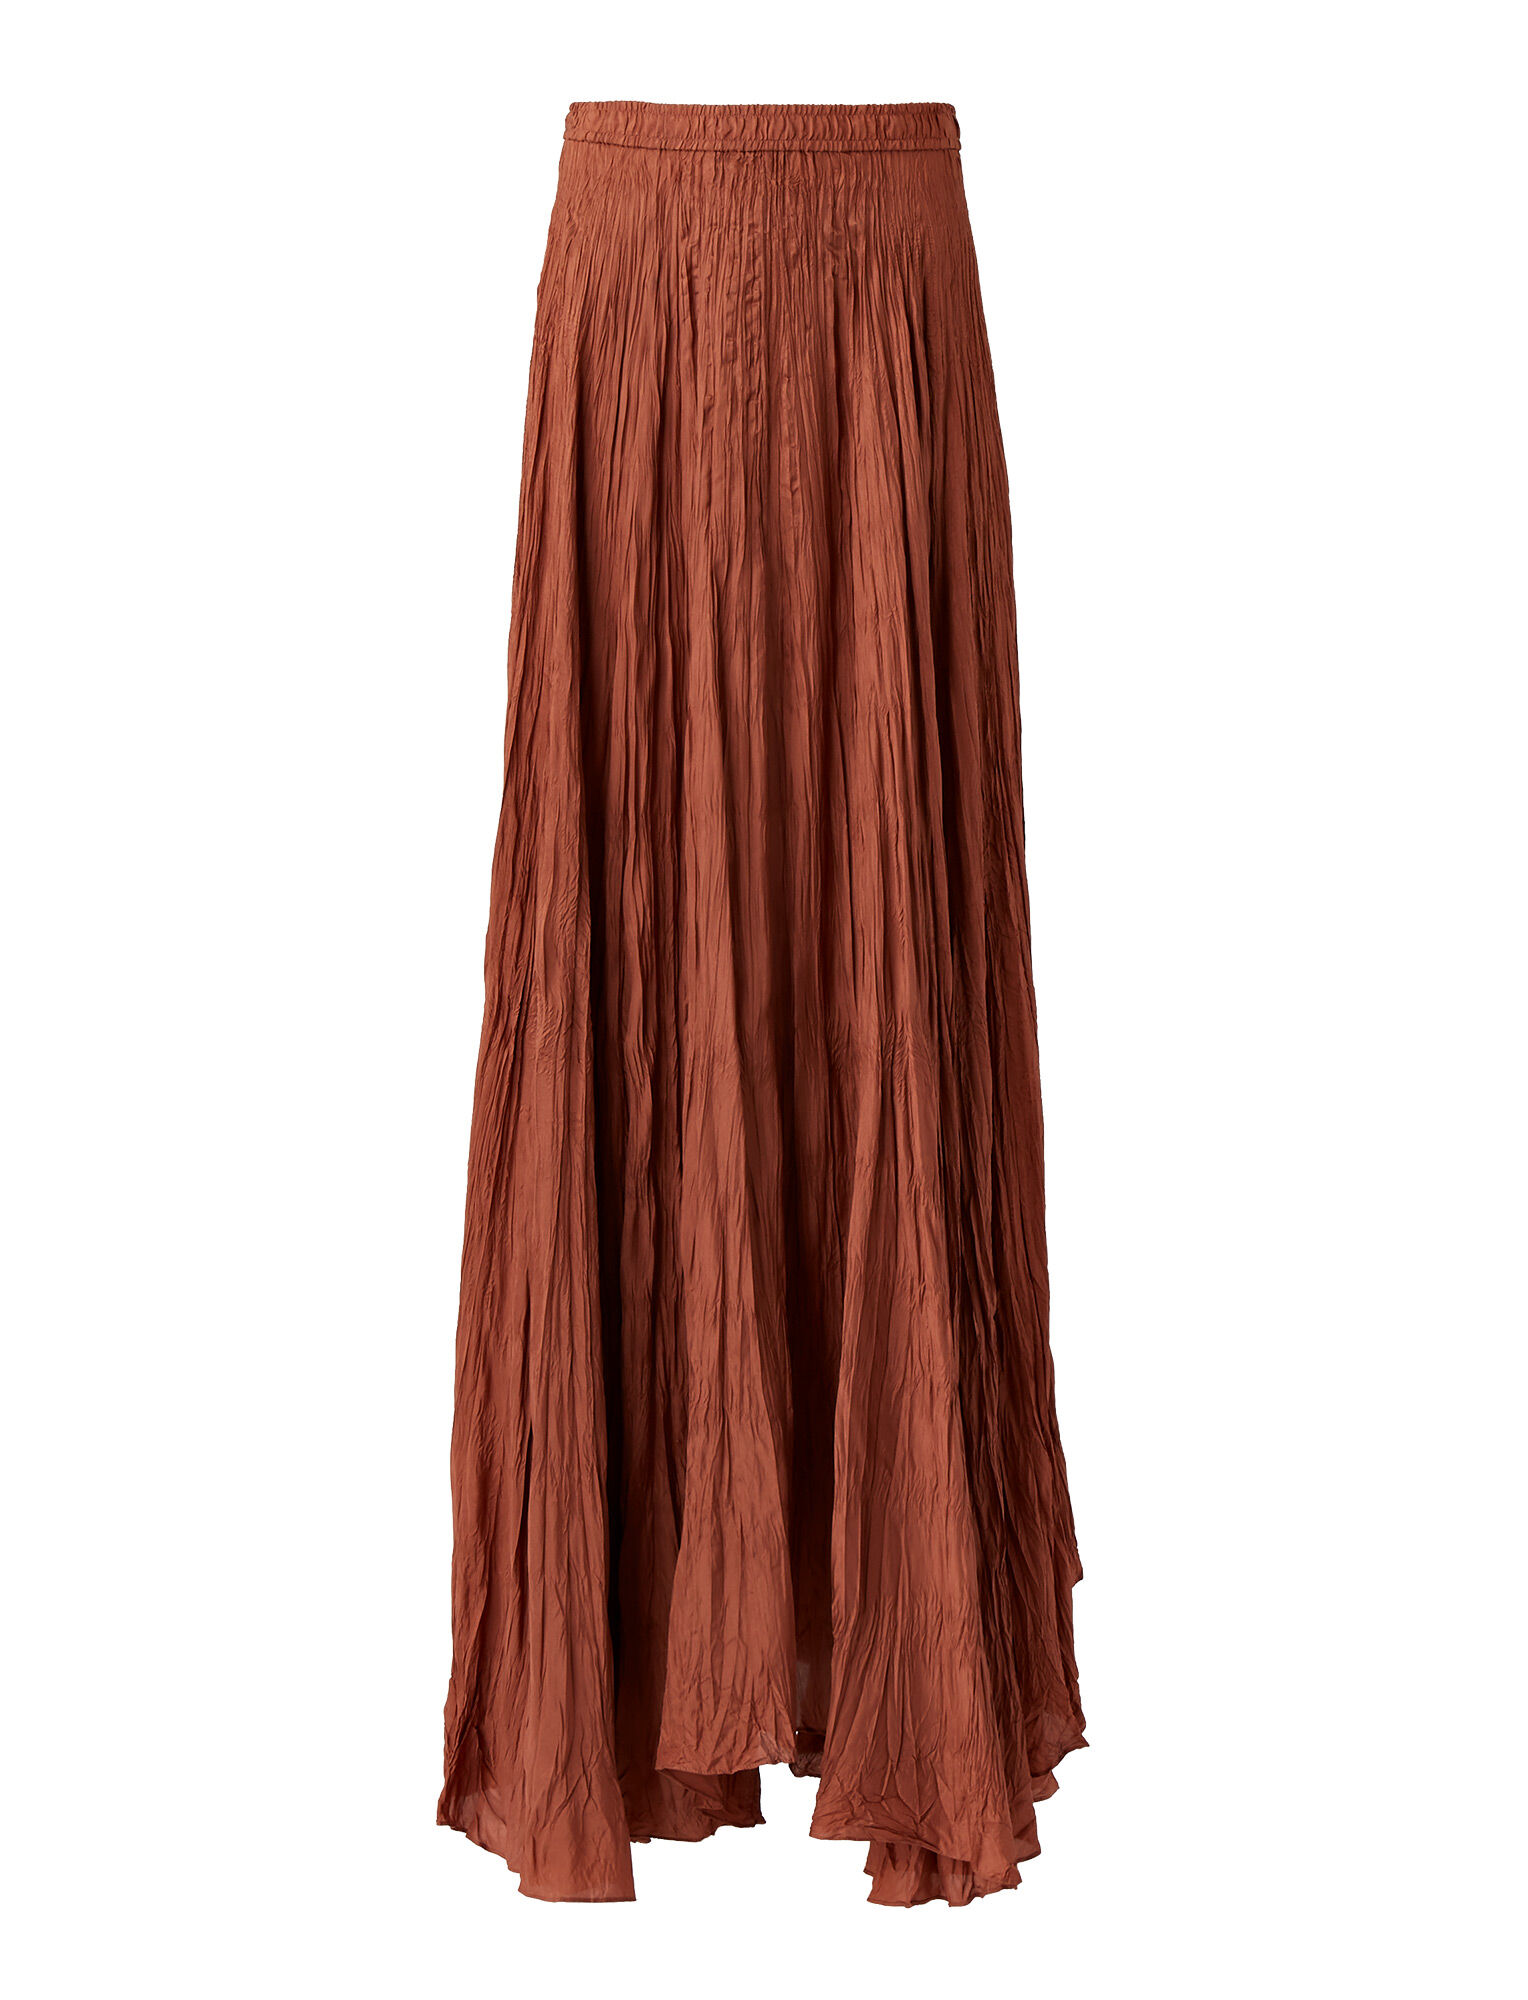 Joseph, Nanco Silk Habotai Skirt, in DUSTY ROSE